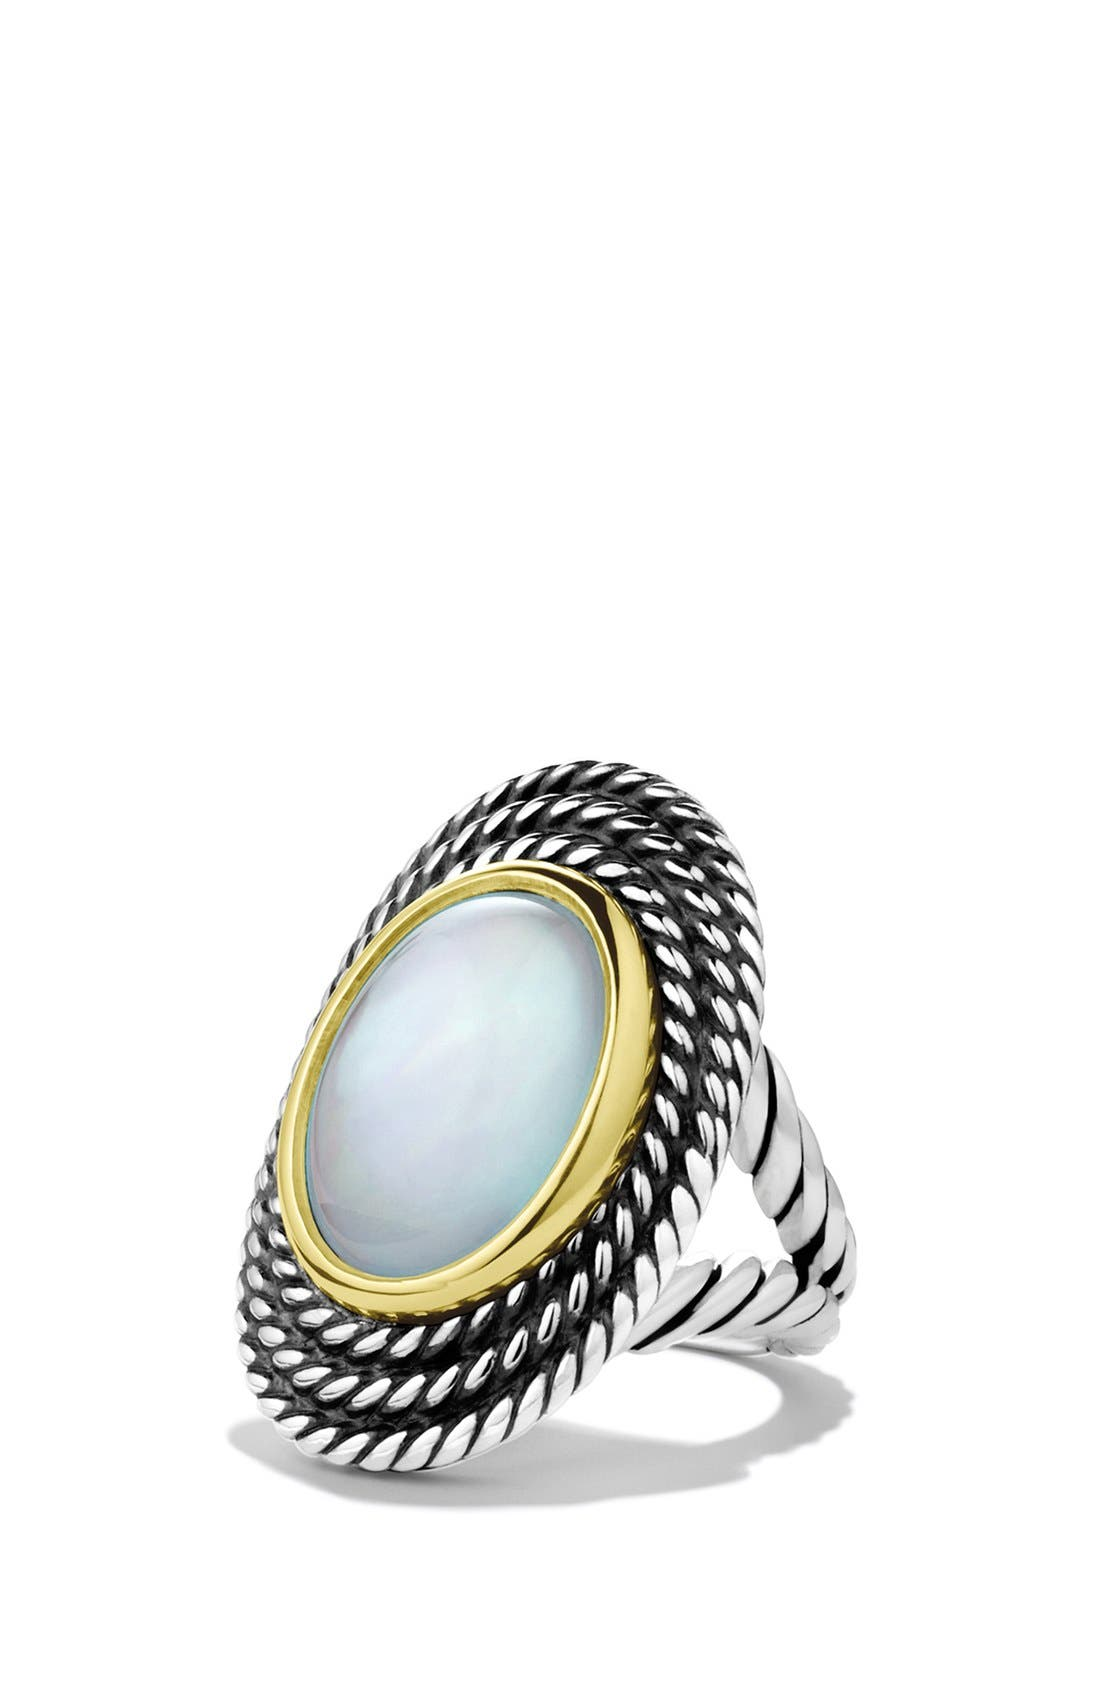 Alternate Image 1 Selected - David Yurman 'Cable Coil' Ring with Moon Quartz and Gold